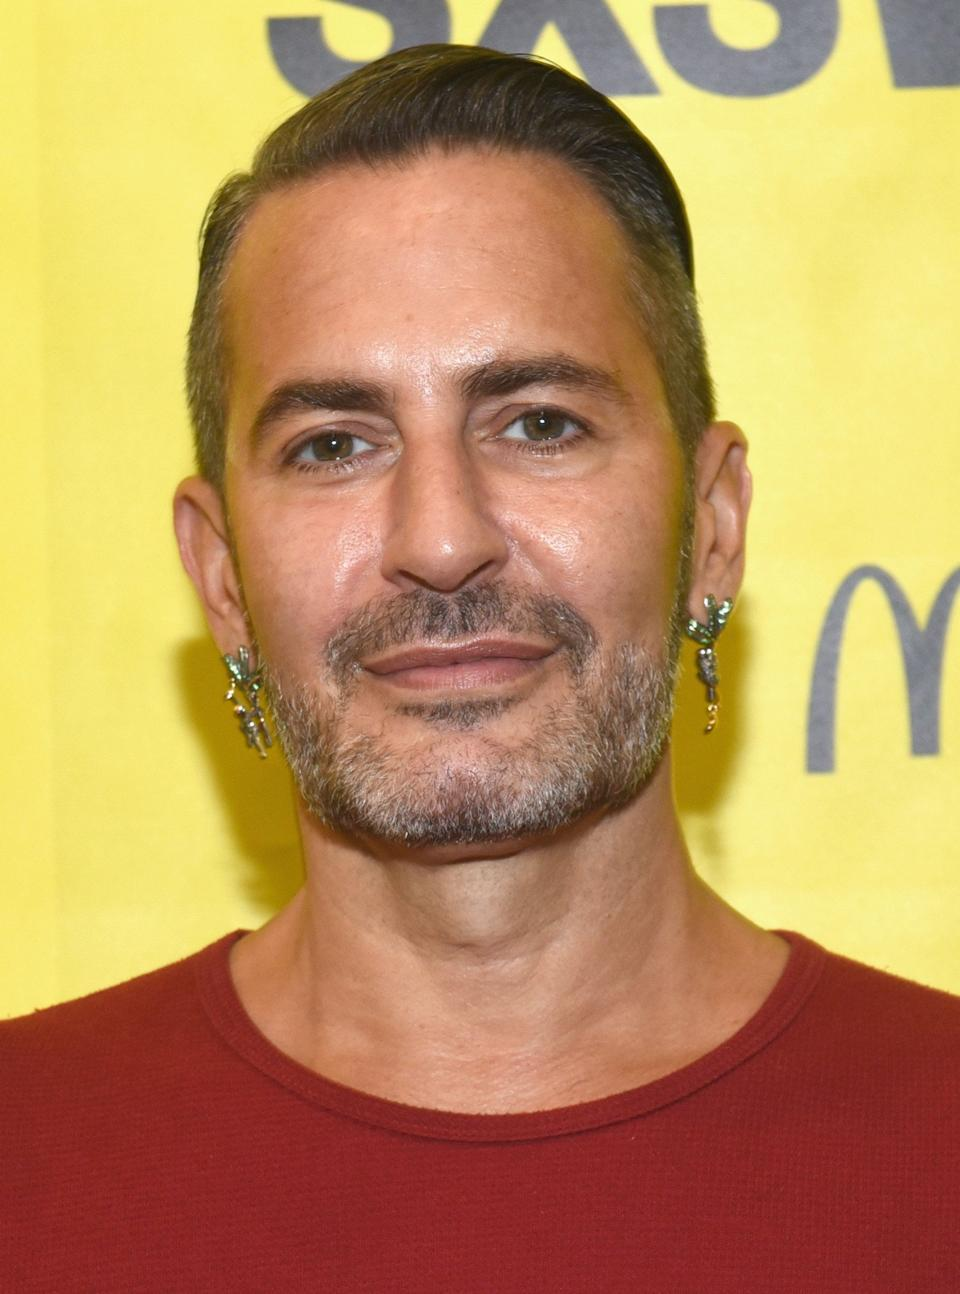 """Marc Jacobs told WWD in November 2016 that he """"has no interest whatsoever"""" in dressing the first lady, opting instead to put his """"energy into helping out those who will be hurt by [Donald] Trump and his supporters."""""""